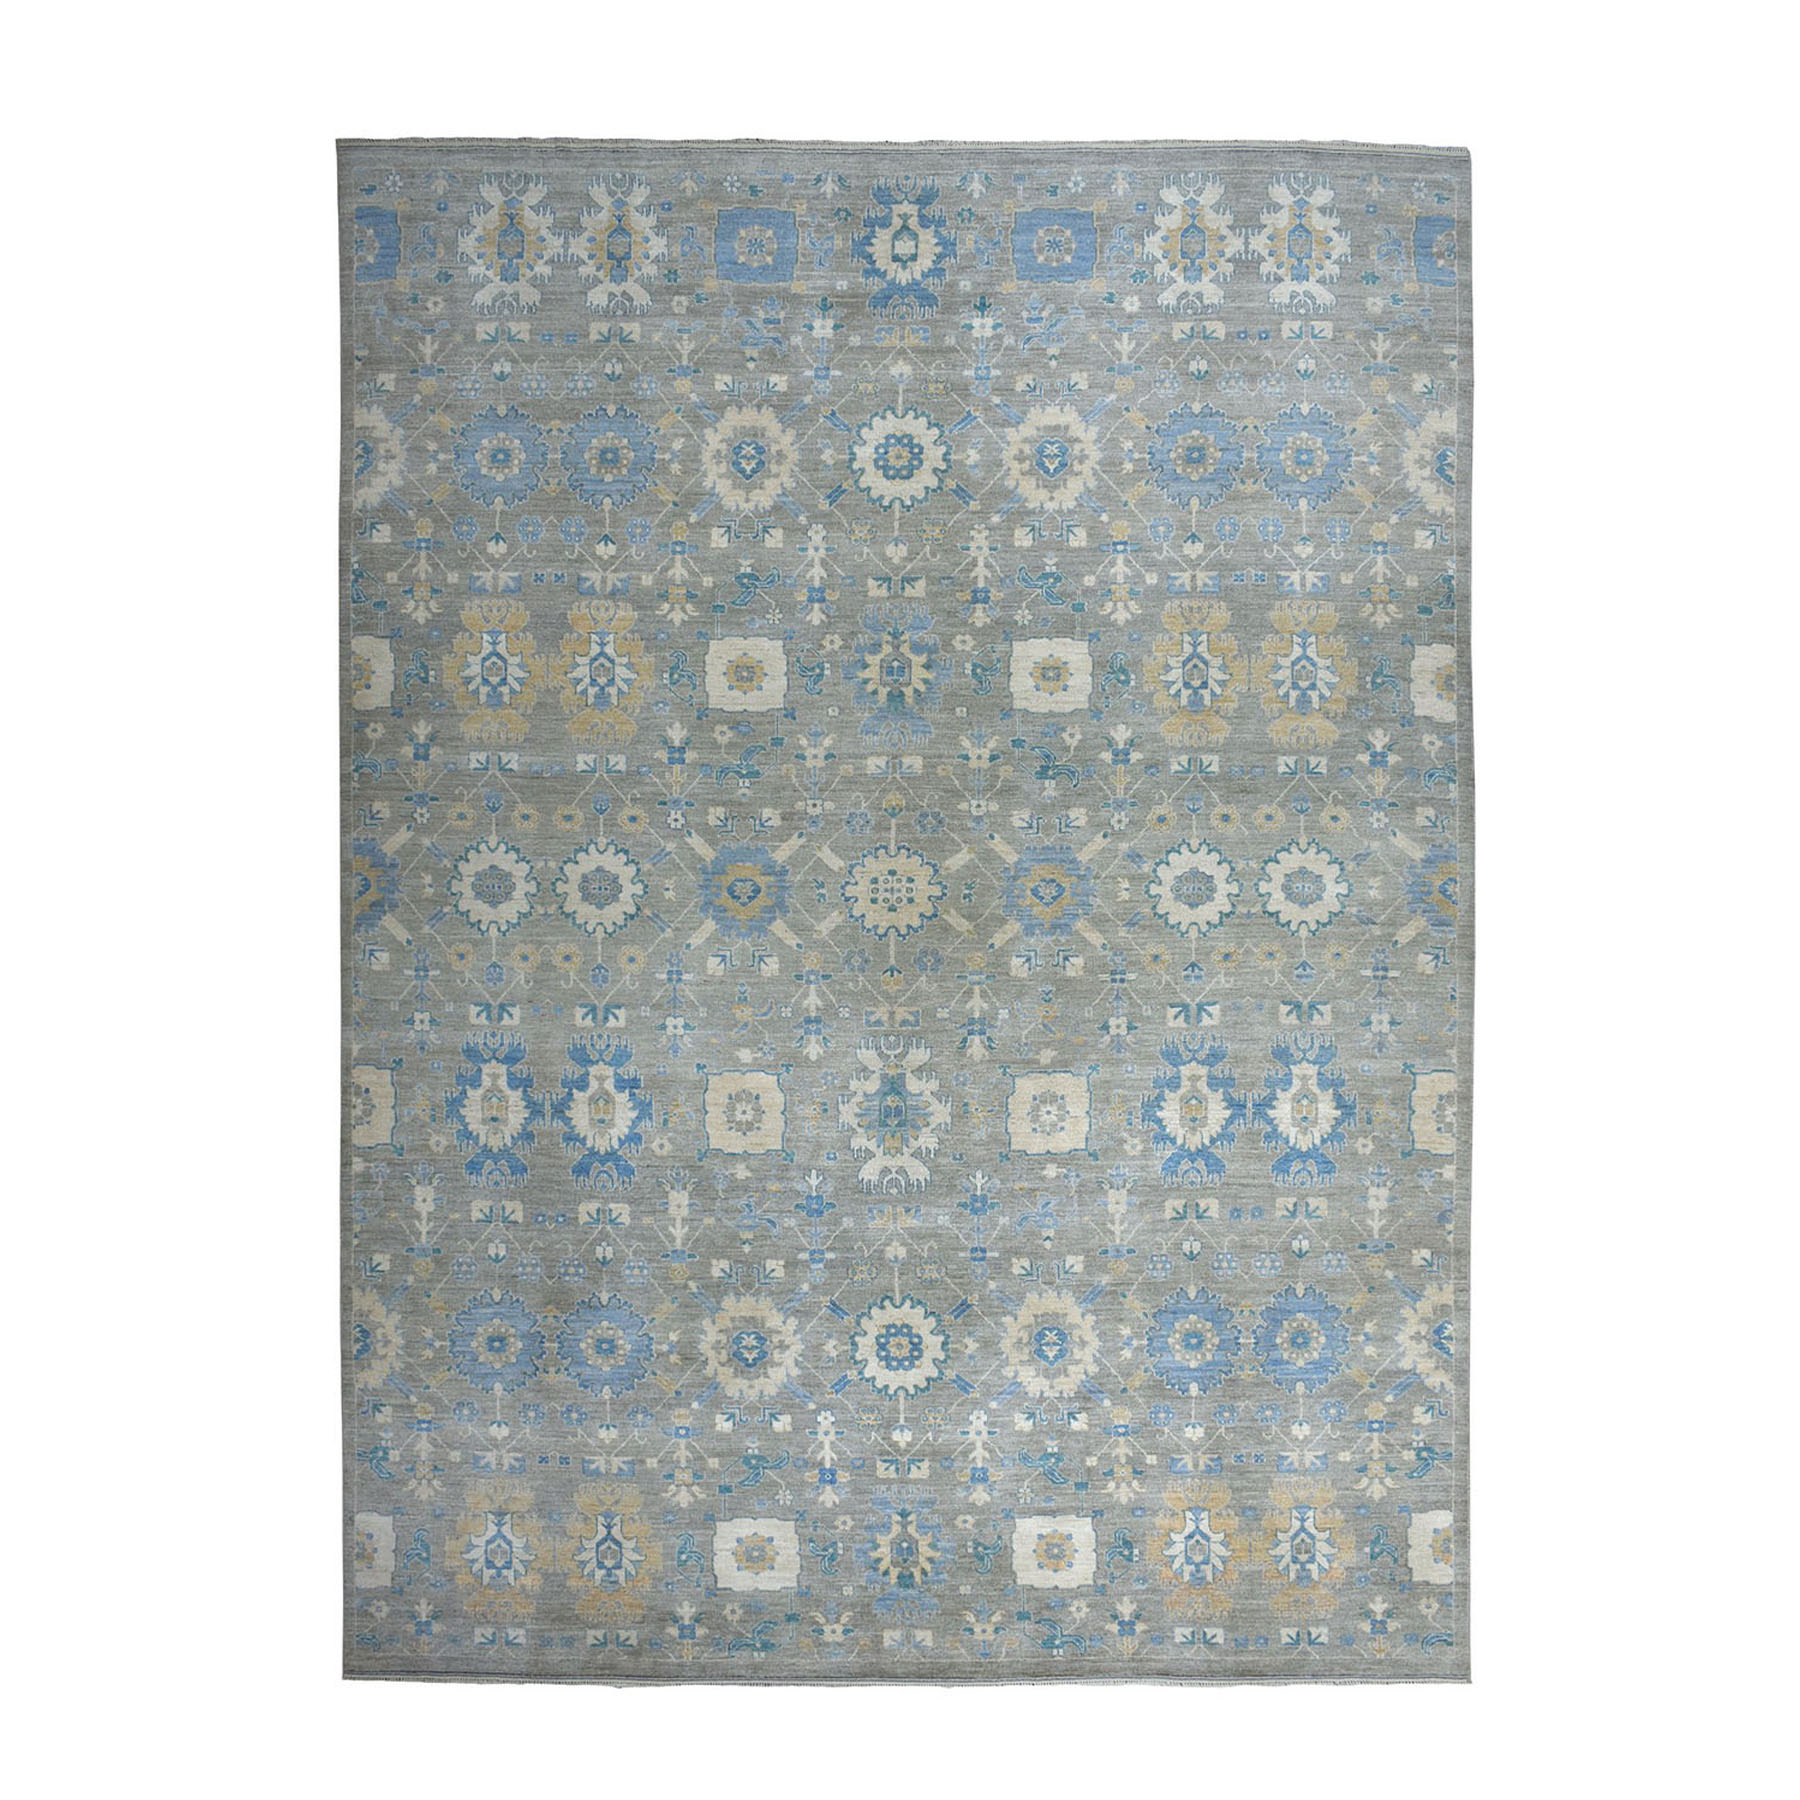 10'X14' All Over Design Fabric Collection Peshawar Hand-Knotted Oriental Rug moae08c0